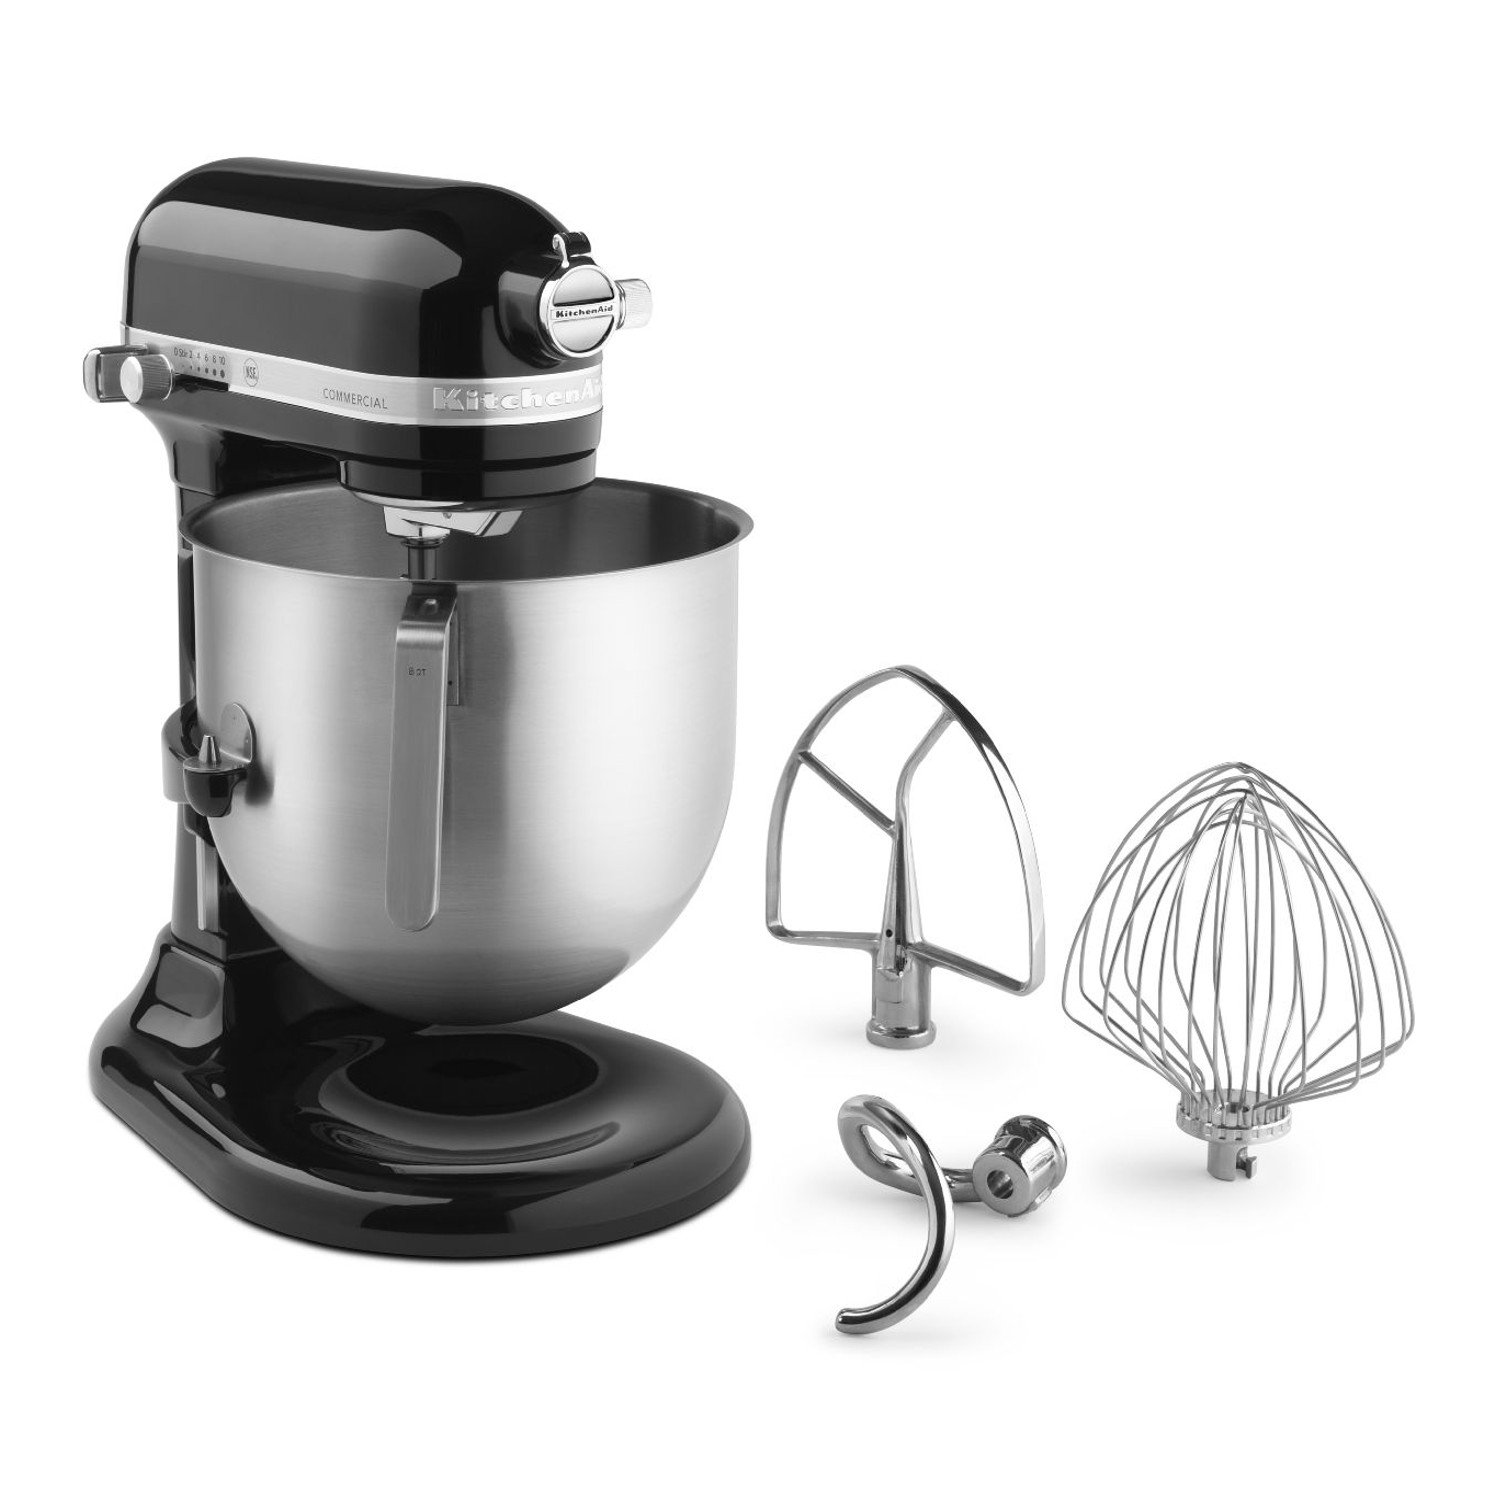 KitchenAid KSM8990OB 8-Quart Commercial Countertop Mixer, 10-Speed, Gear-Driven, Onyx Black